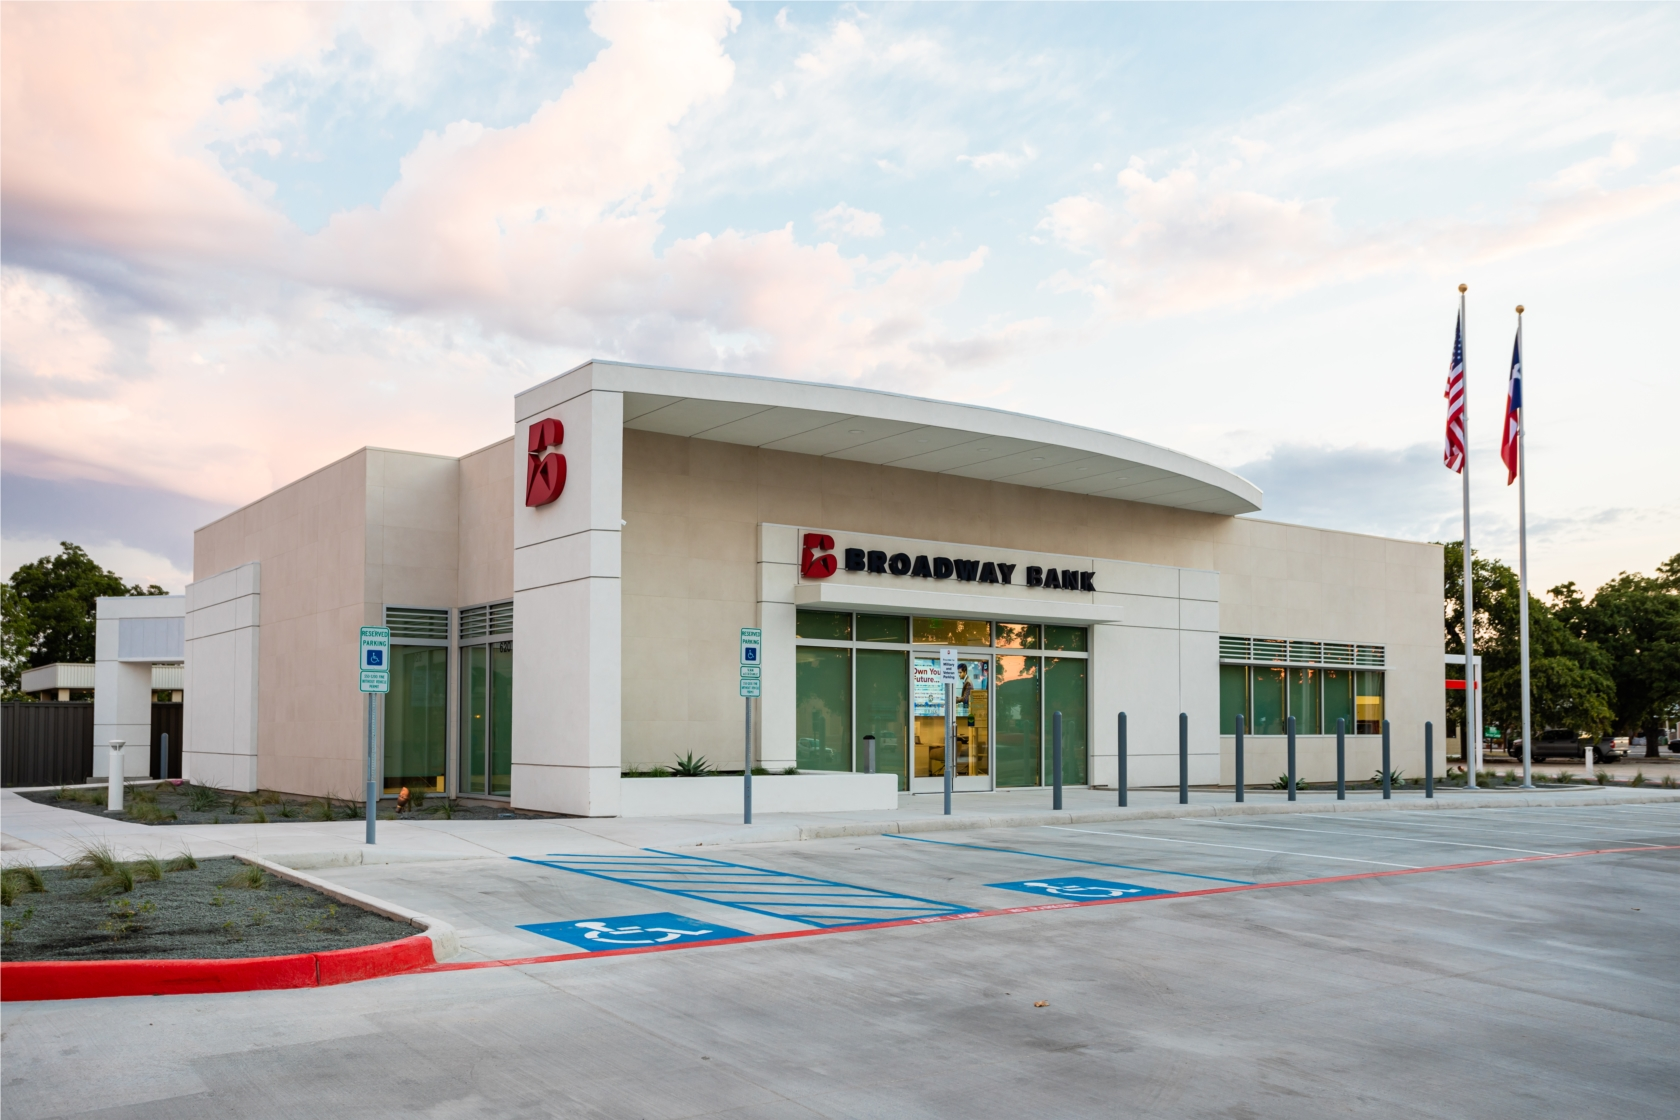 Broadway Bank opened up a state-of-the-art financial center in Kerrville in August 2020. The new design is optimized for a best in class customer experience and also reflects the bank's commitment to deliver modern banking that's locally sourced and personally delivered.